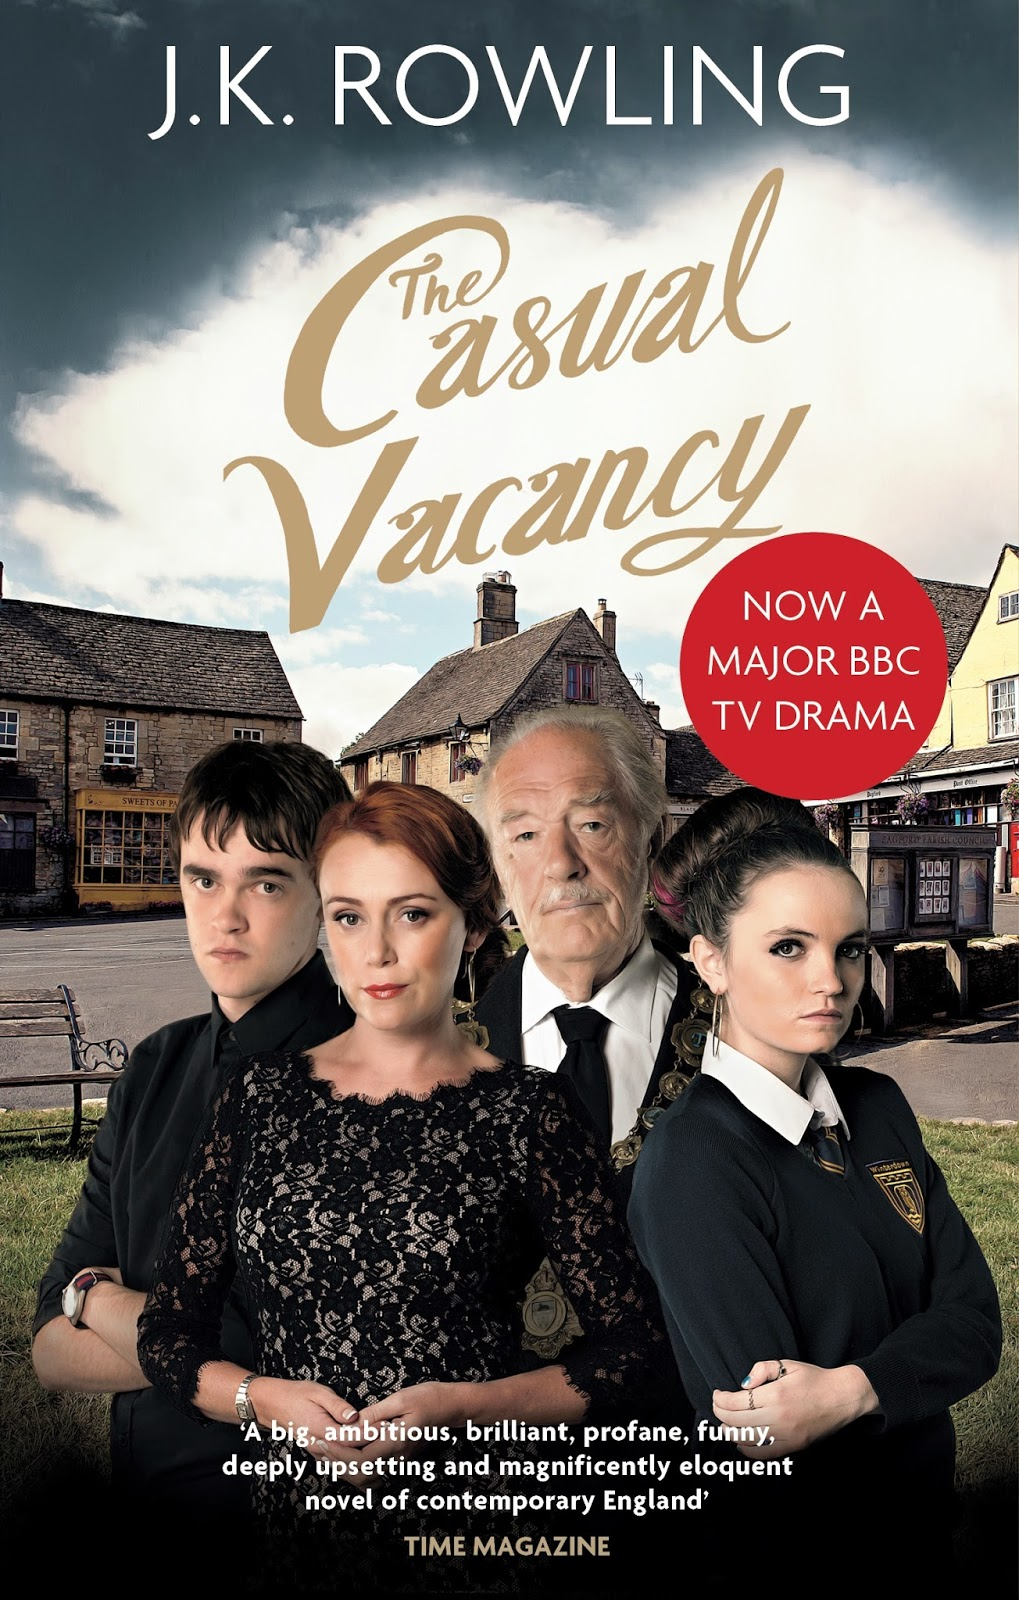 Capitulos de: The Casual Vacancy